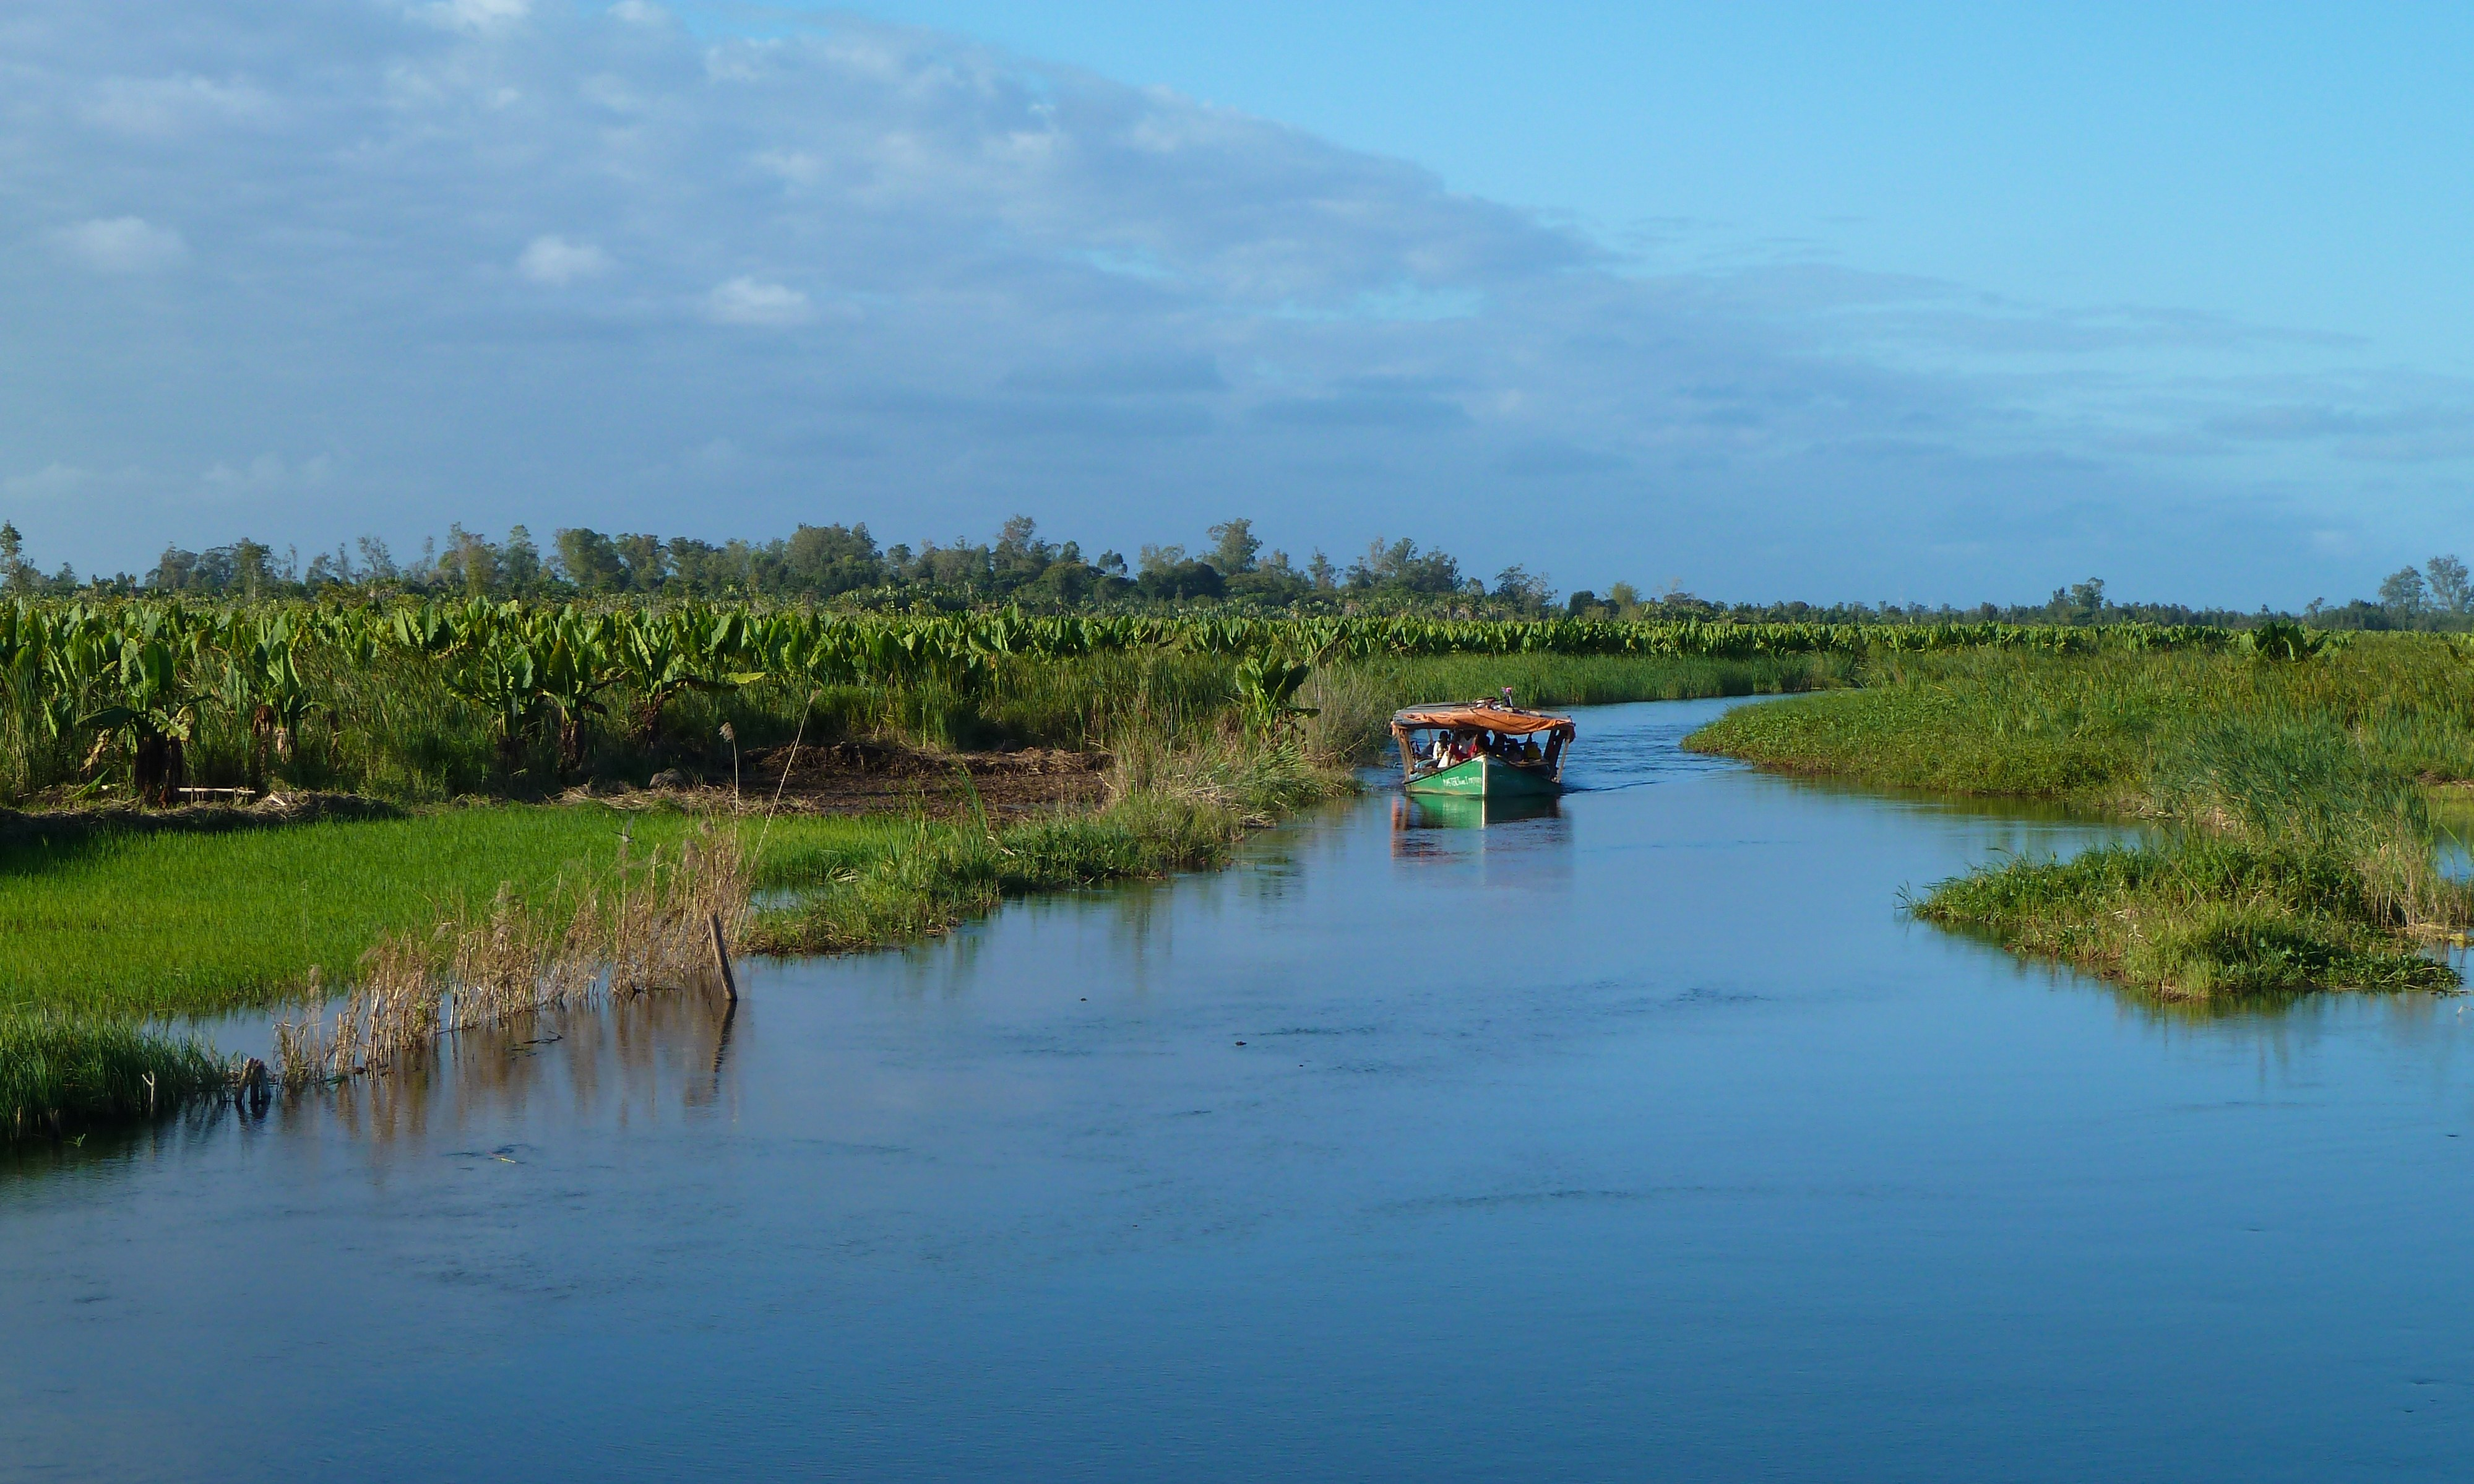 Madagascar with a thousand facets, discovering the Panganales canal